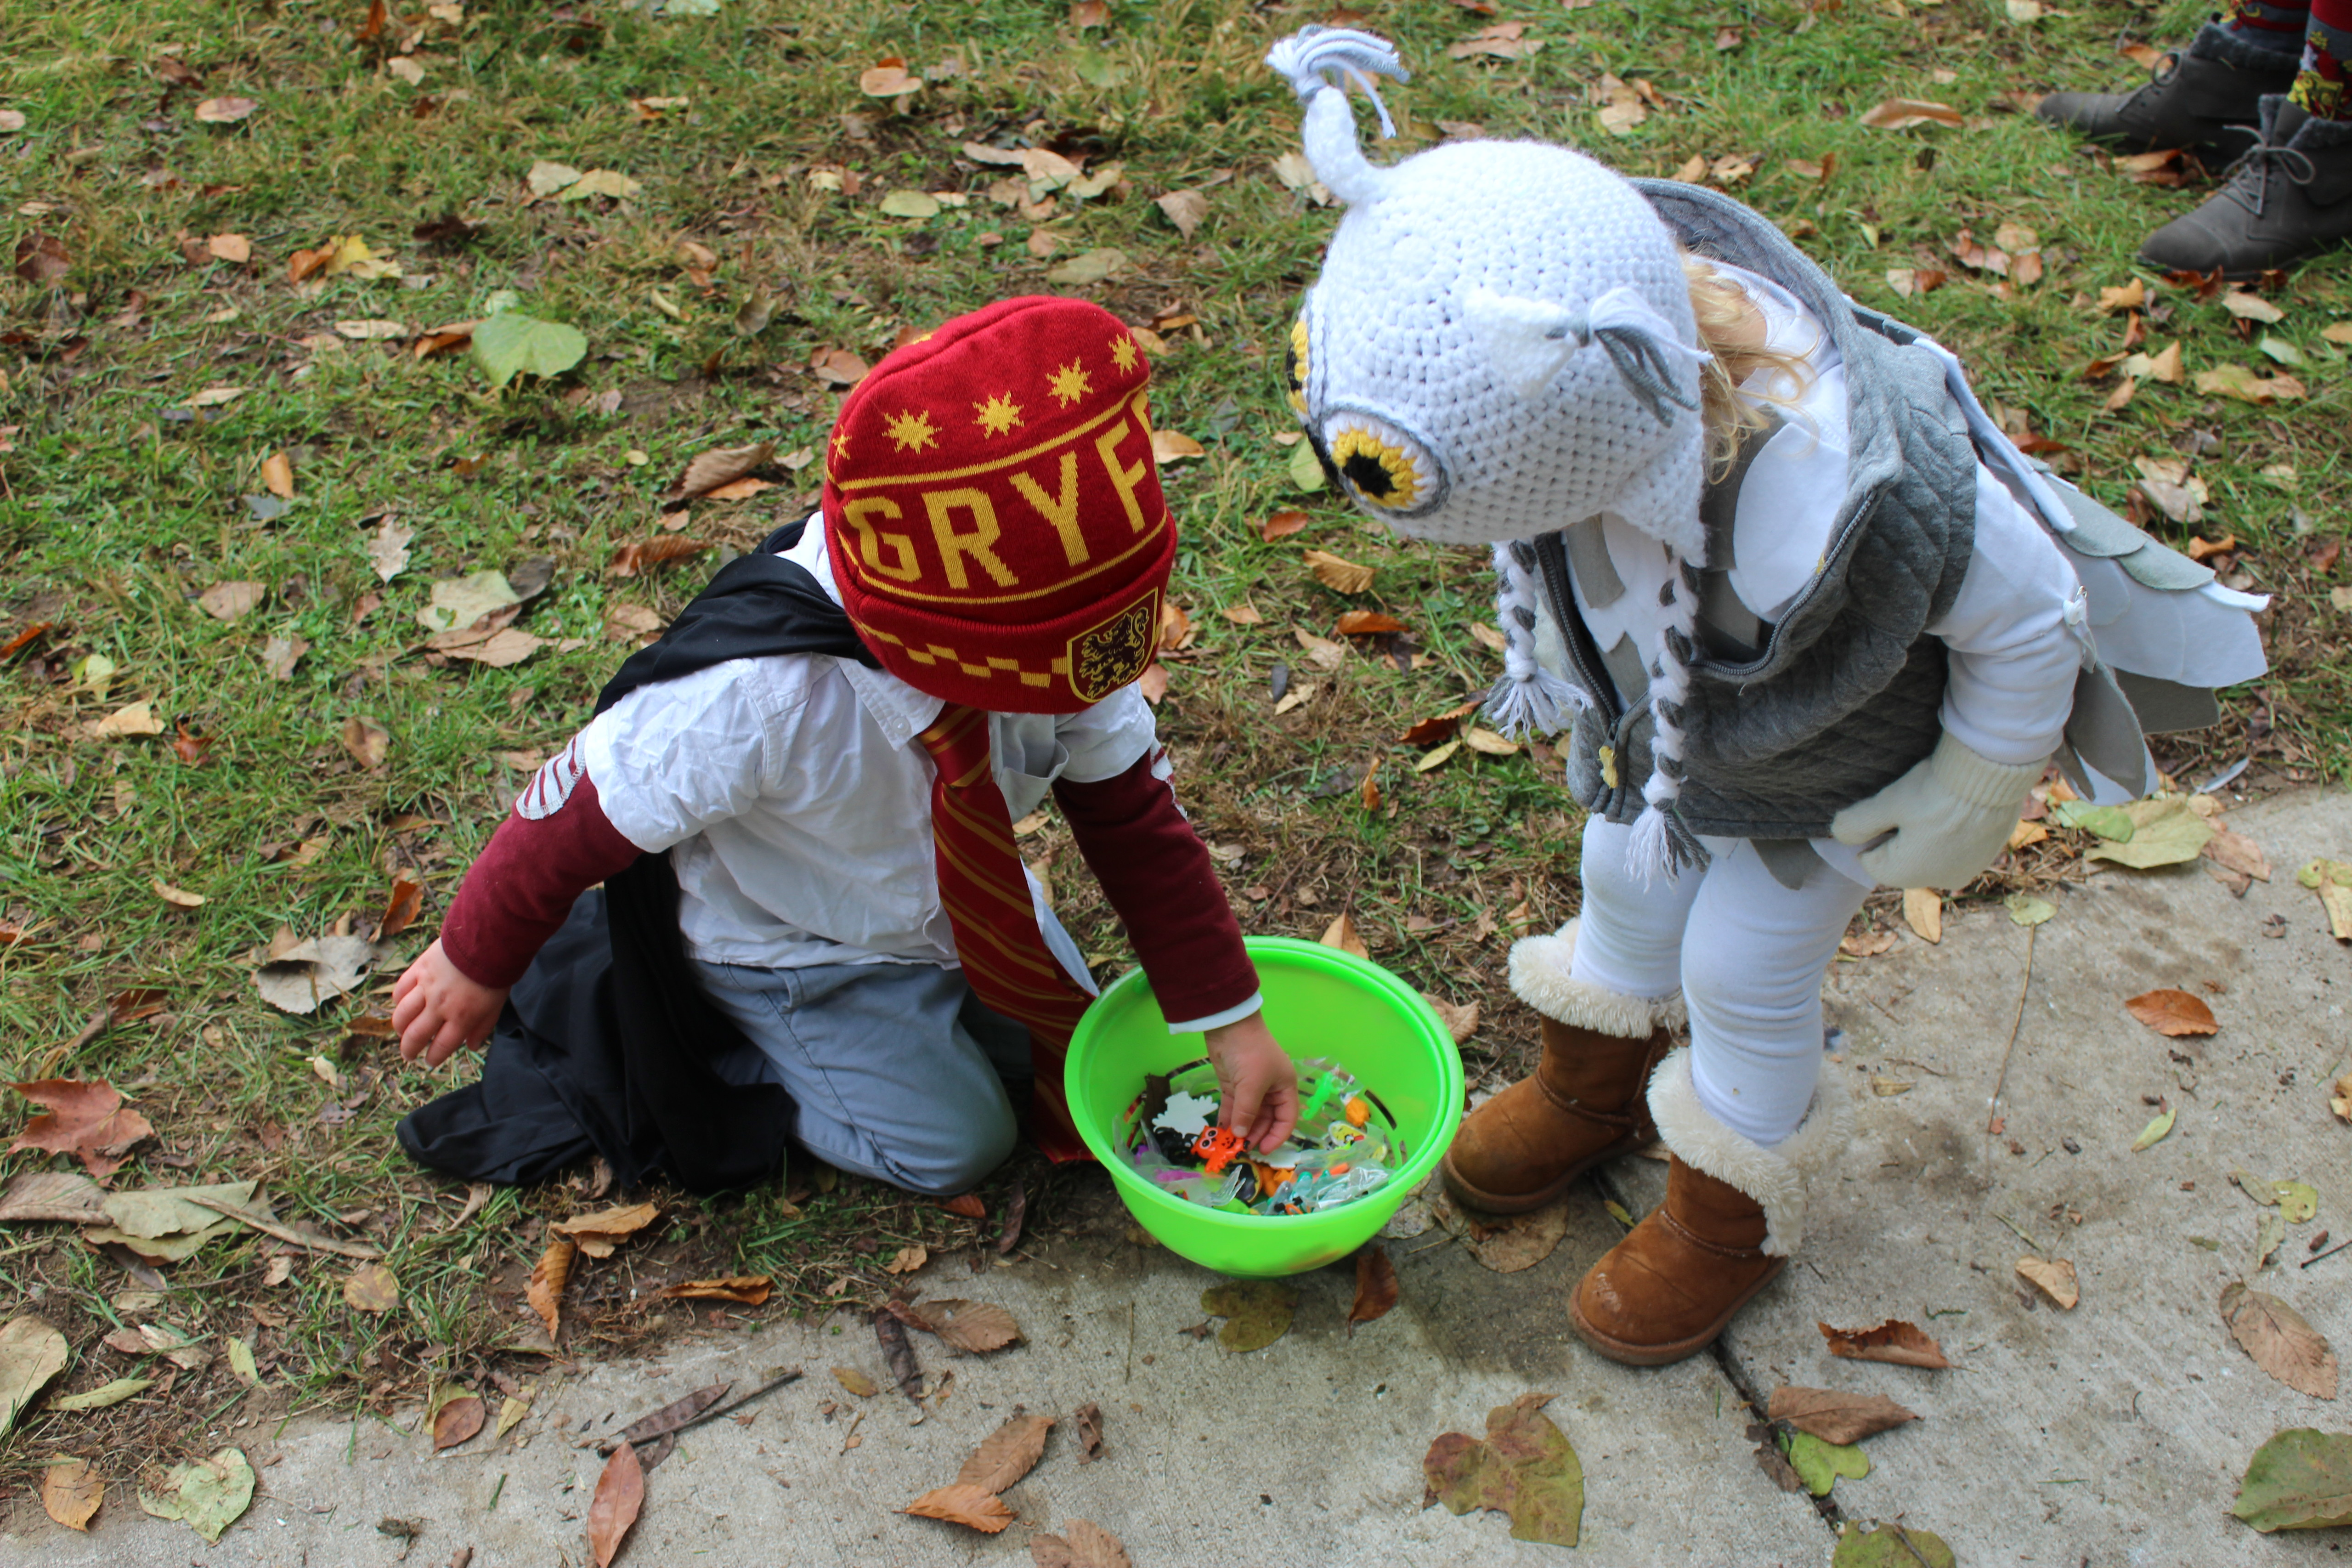 MDHHS Sets Guidelines for Trick-or-Treating During the COVID-19 Pandemic